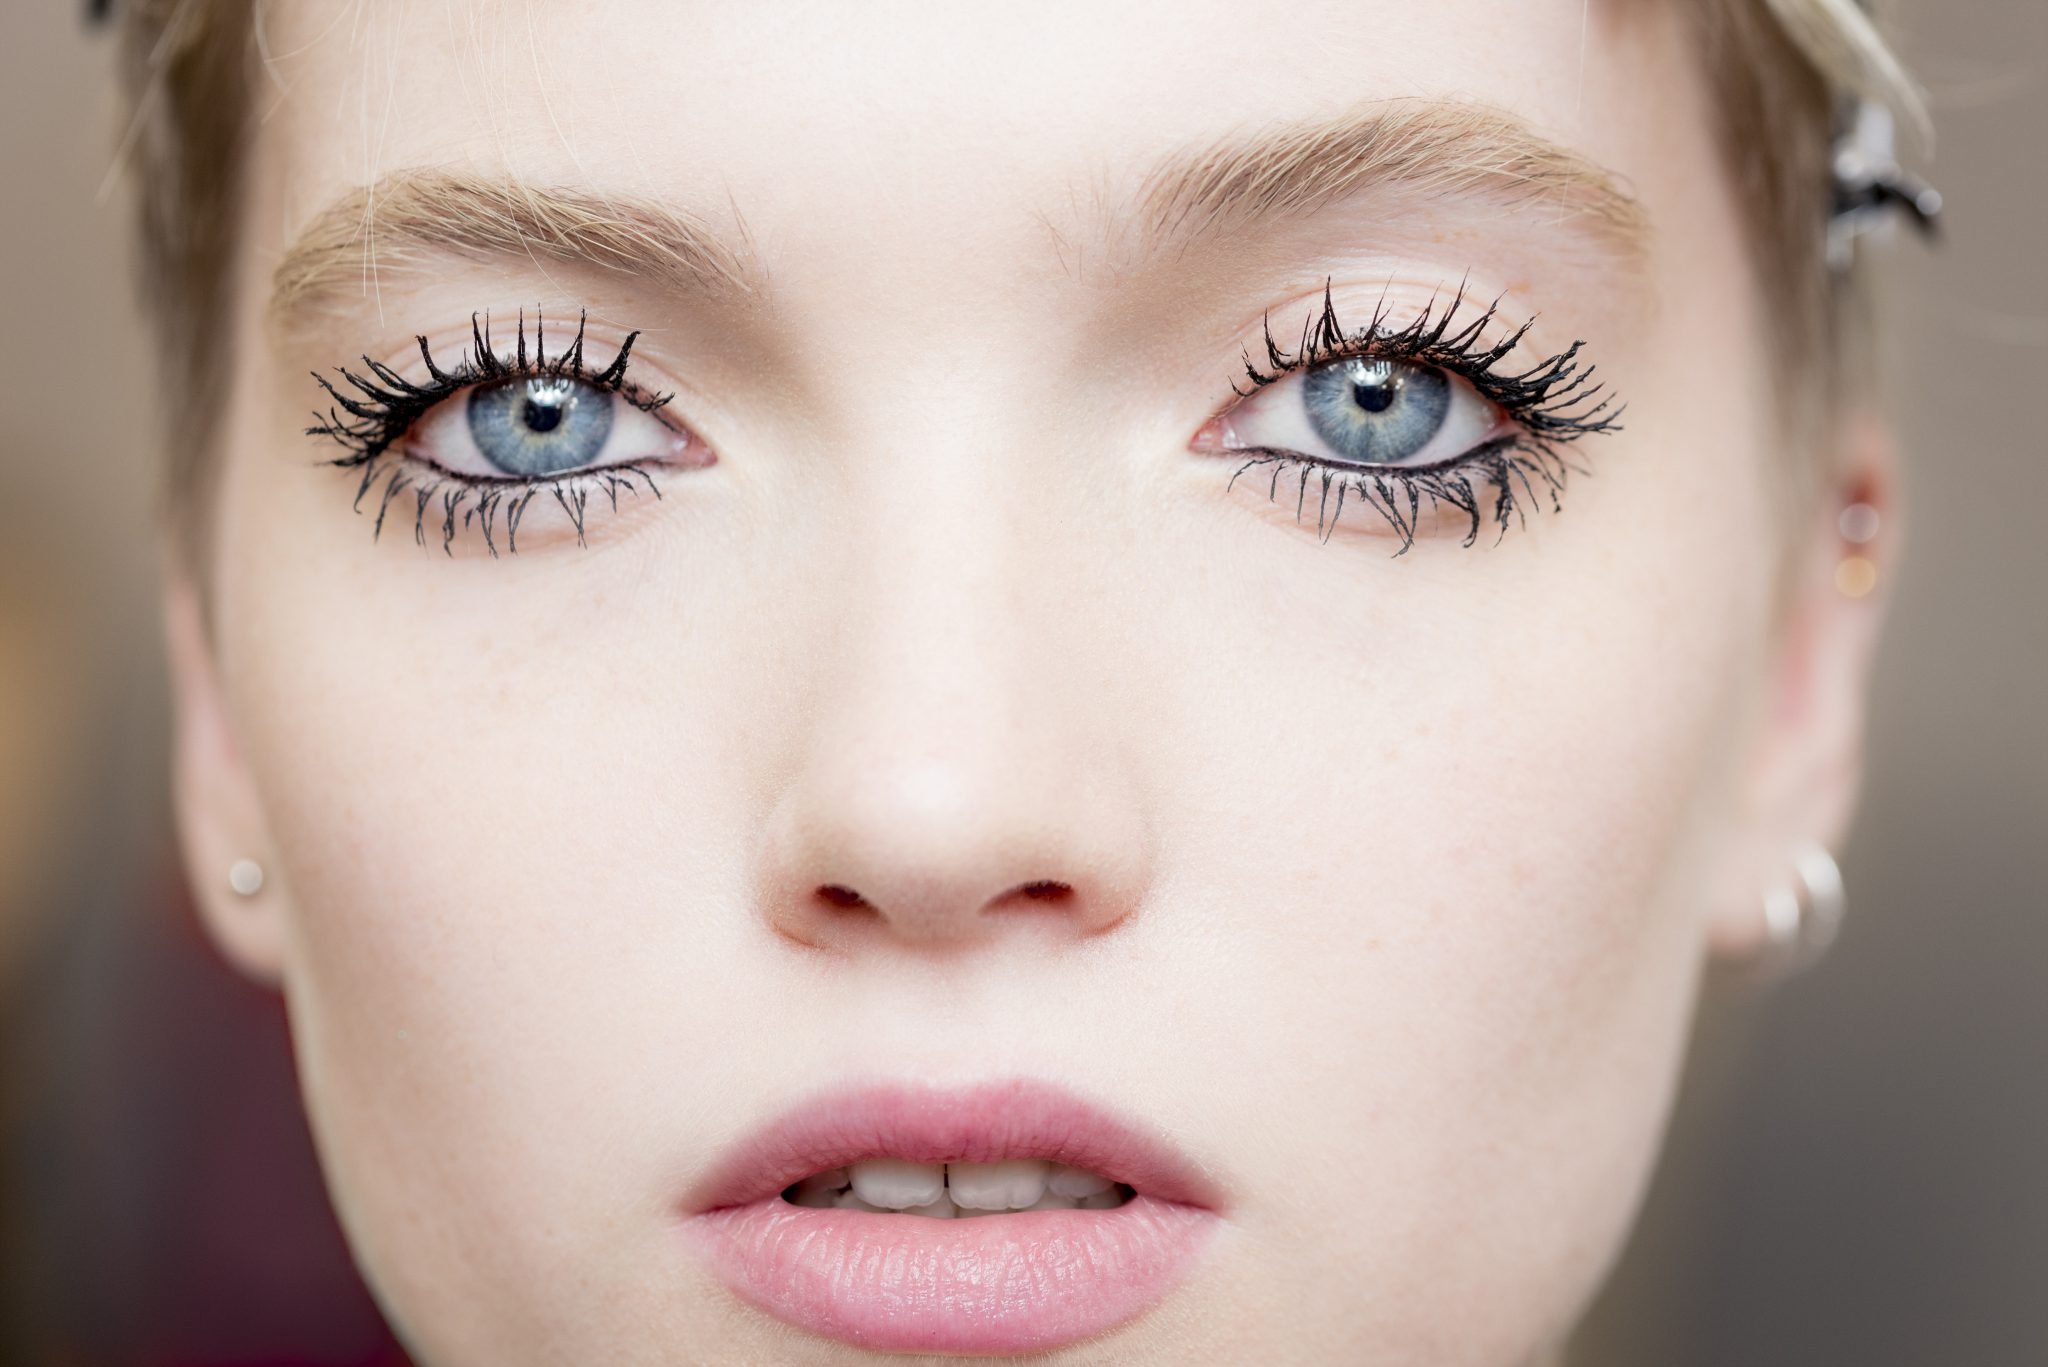 Peter Philips Spring Summer 2018 Ready-To-Wear collection Dior Makeup